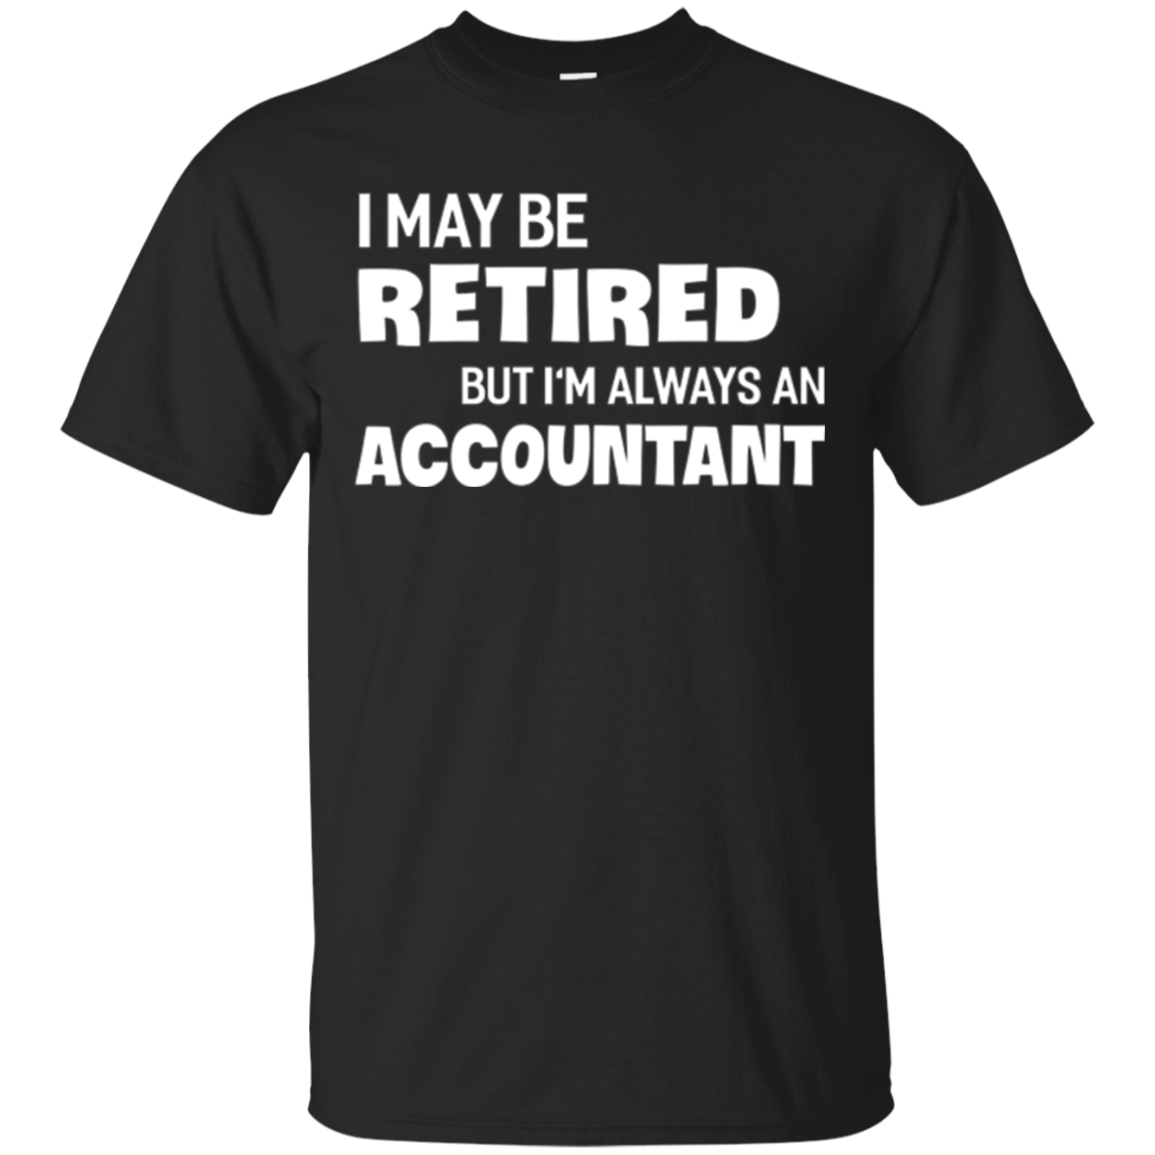 I May Be Retired but I'm Always an Accountant T-shirt